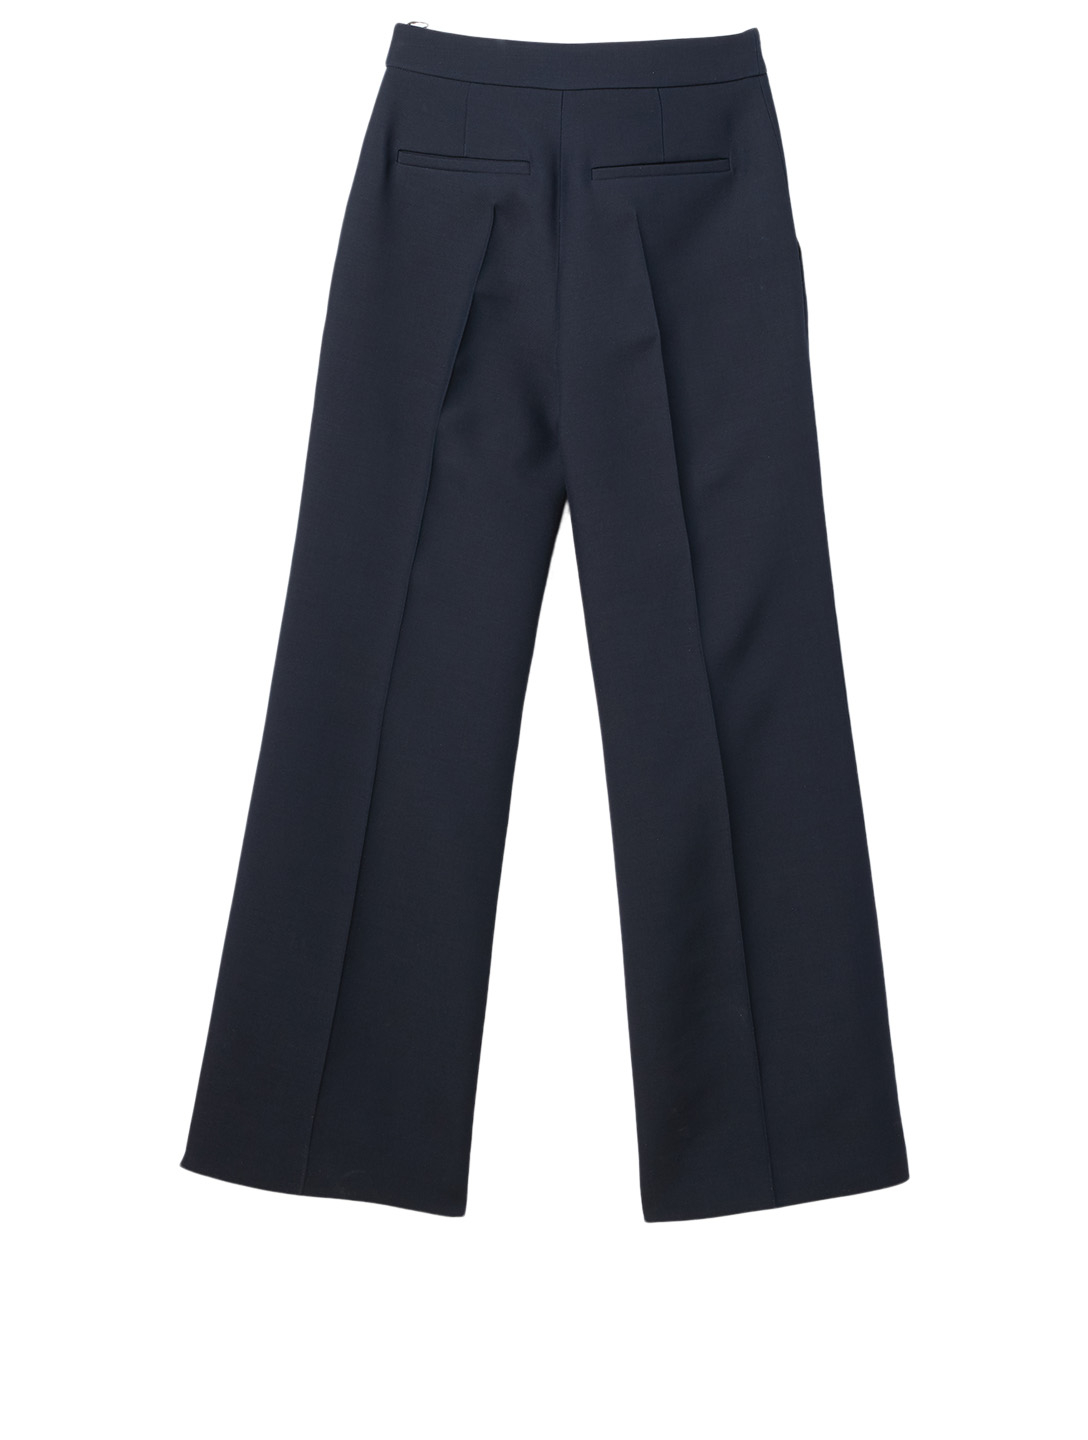 VALENTINO Wool And Silk Pants Women's Blue